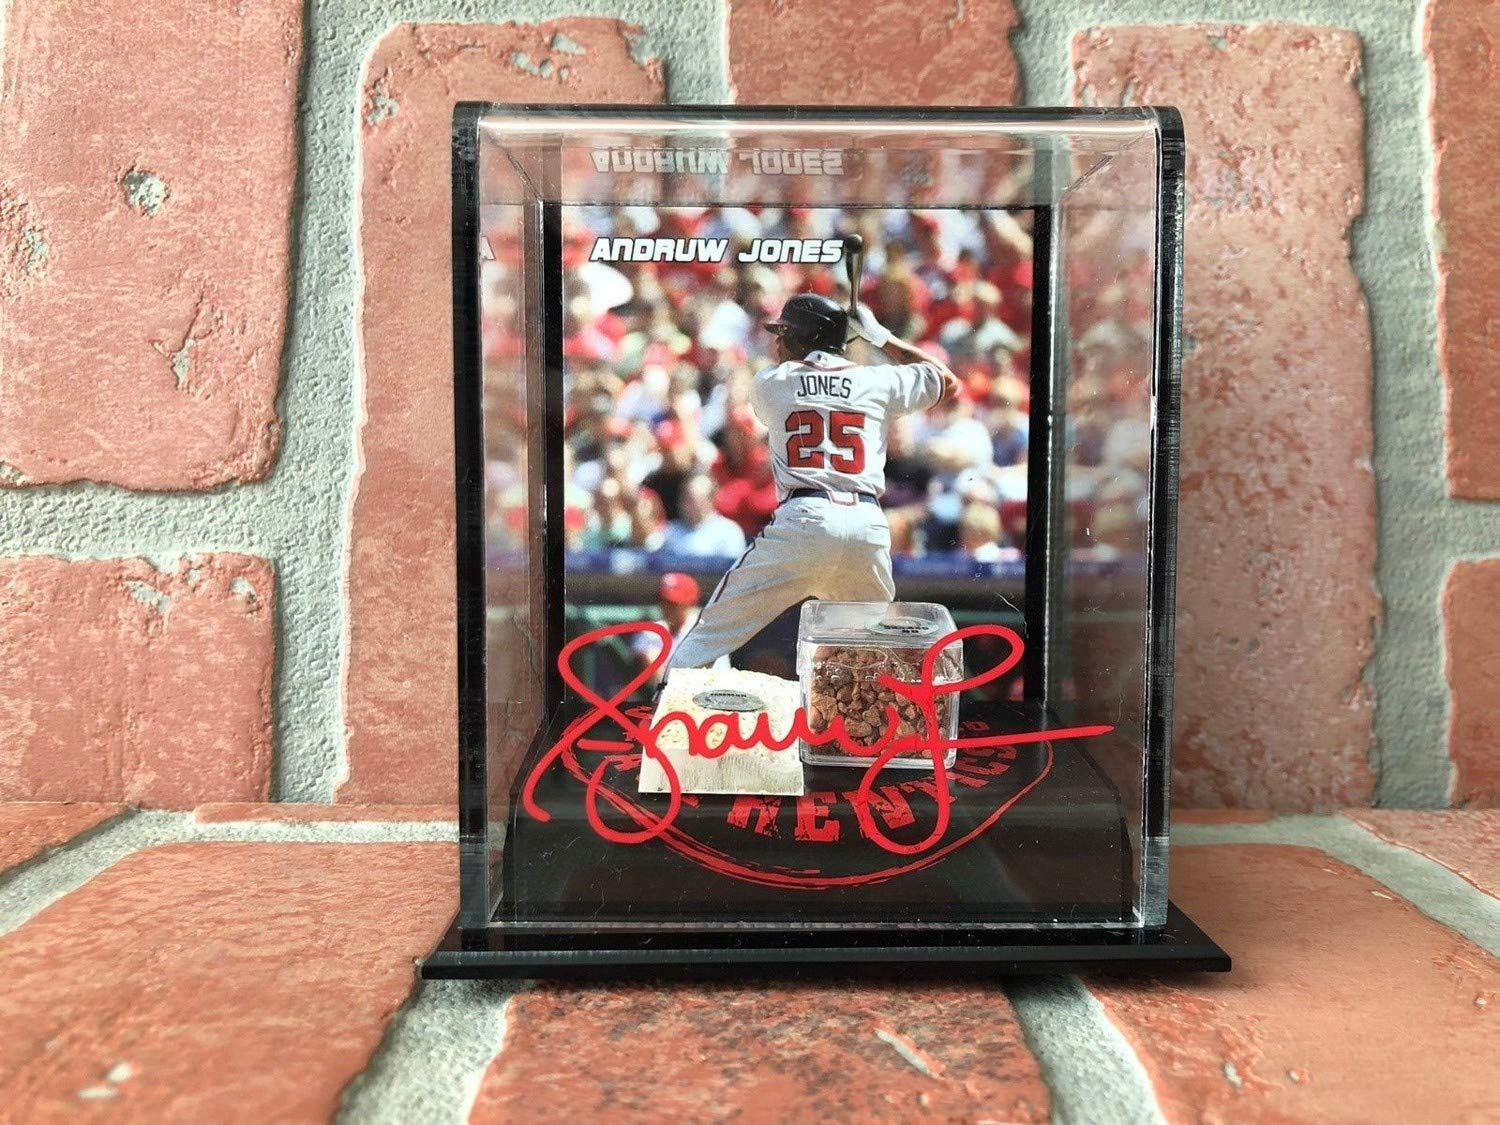 Andruw Jones Autographed Autographed Signed Authentic Dirt/Base Stand MLB Atlanta Braves PSA/DNA